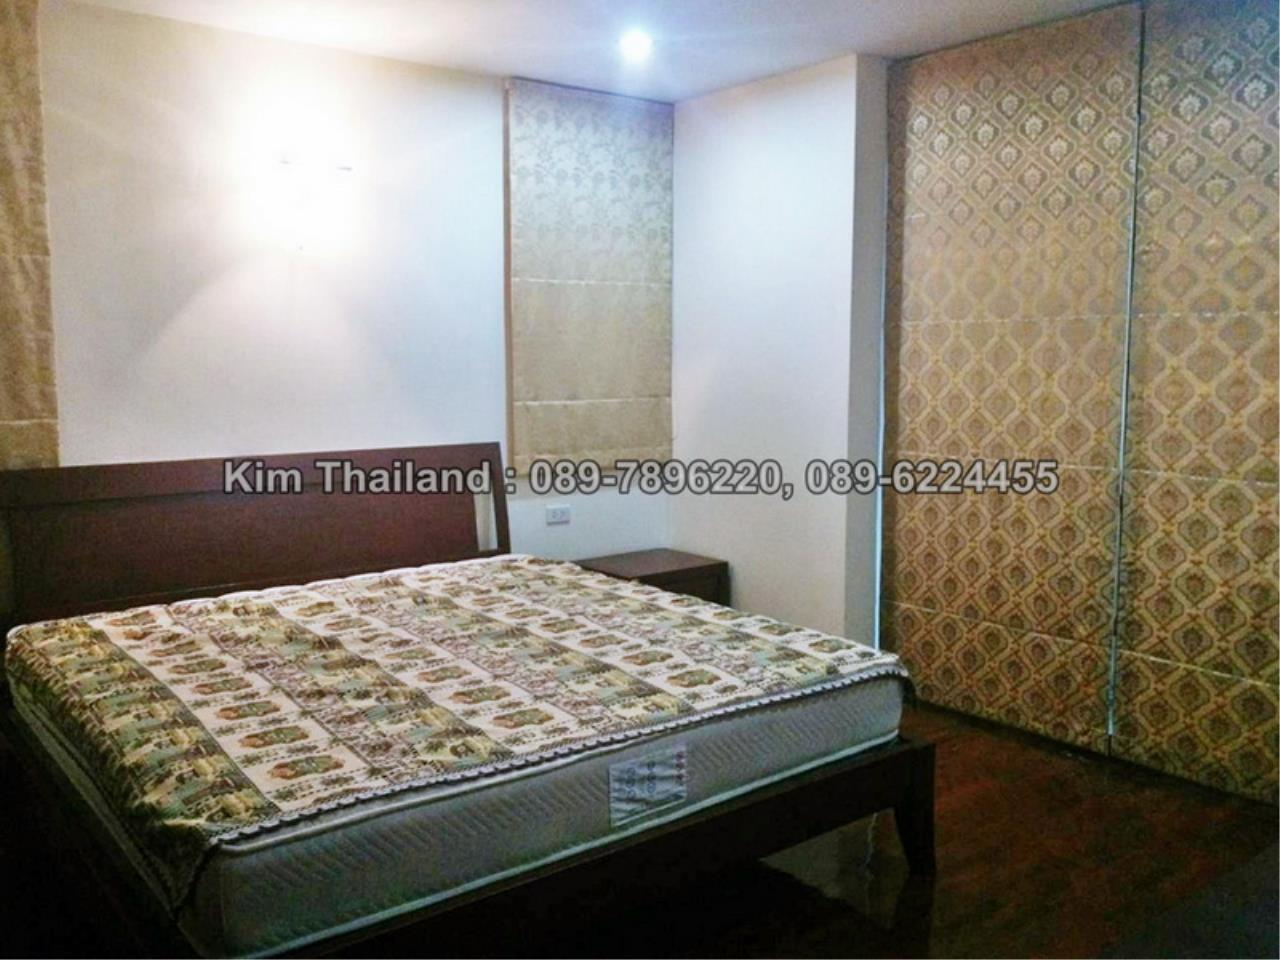 BKKcondorental Agency's For rent, Apartment 999 Residence.  Area 80 sq.m.  1